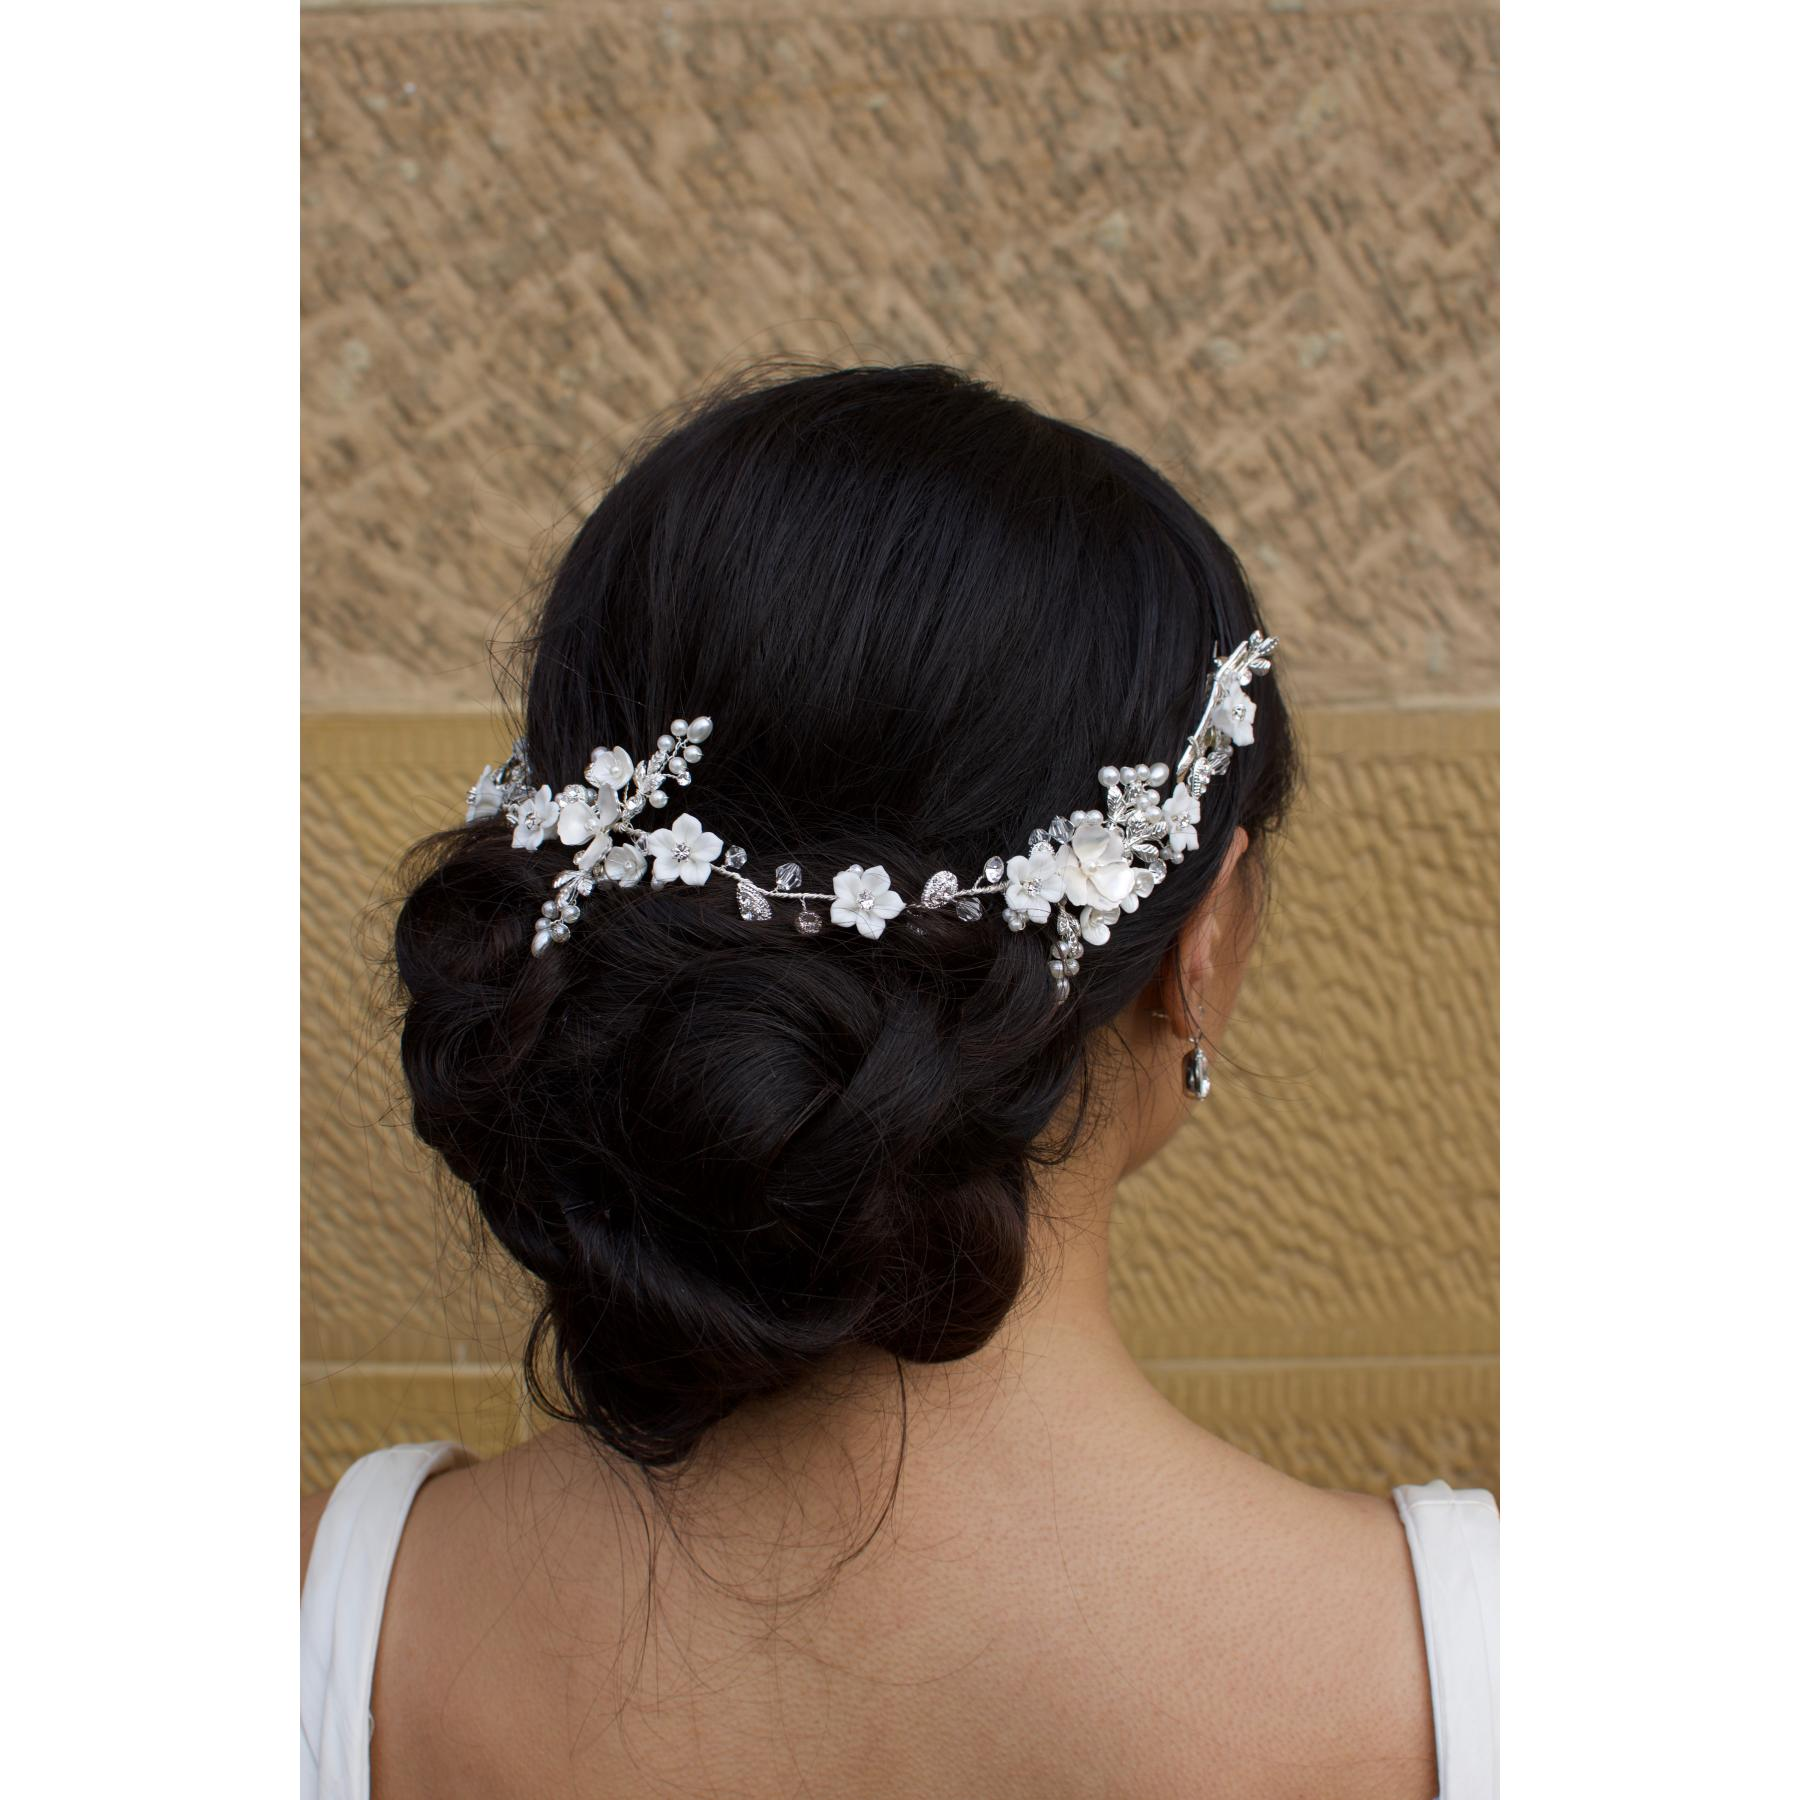 Windsor Camilla White/Silver Flower Hair Vine - WV211 1